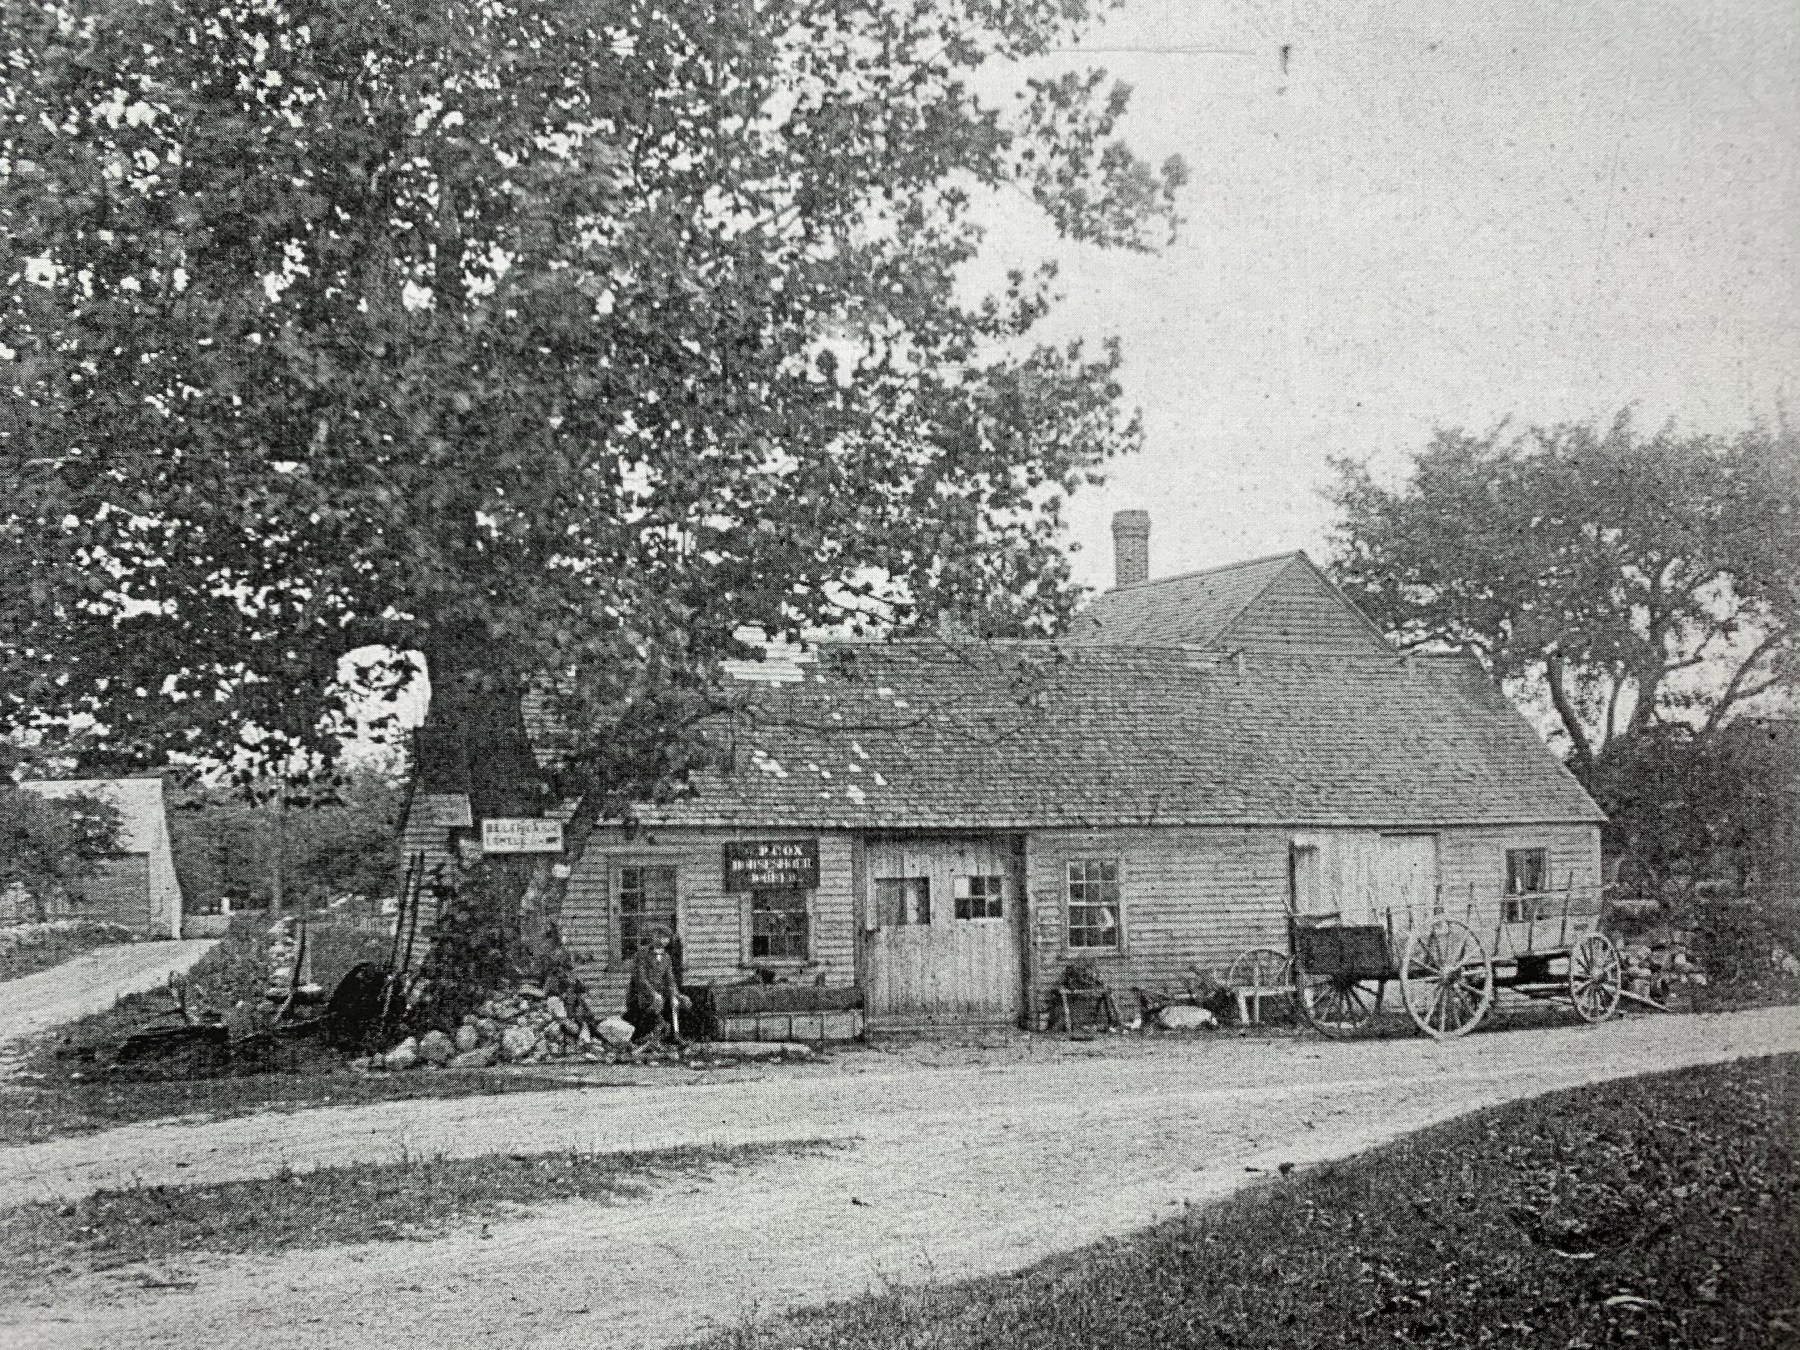 Richard J. Alley's blacksmith shop, 1890s, Burlington MA. Photo credit: town archives